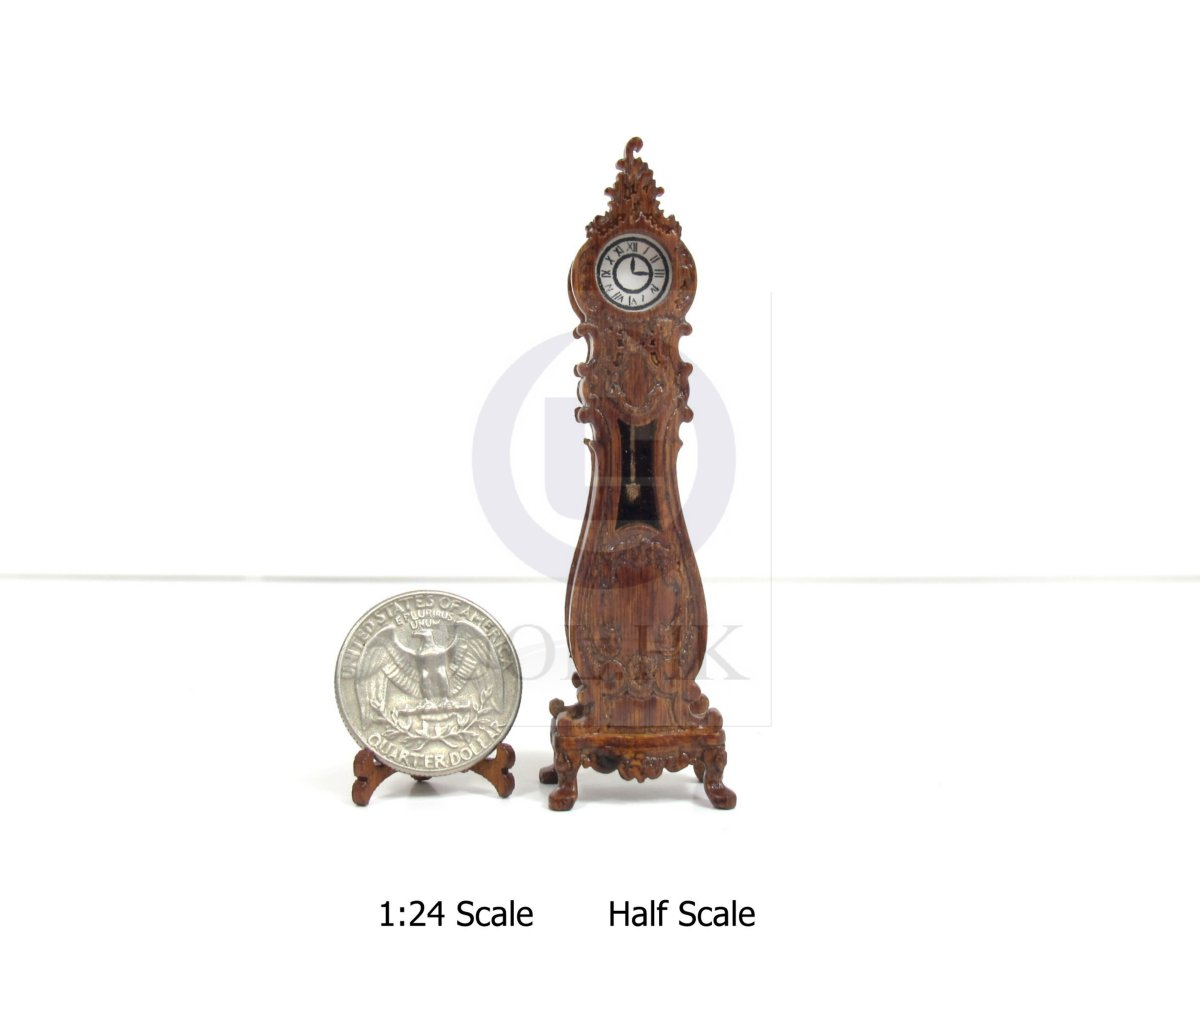 1:24 HALF Scale Luxury Classical French Grandfather Clock [WN]